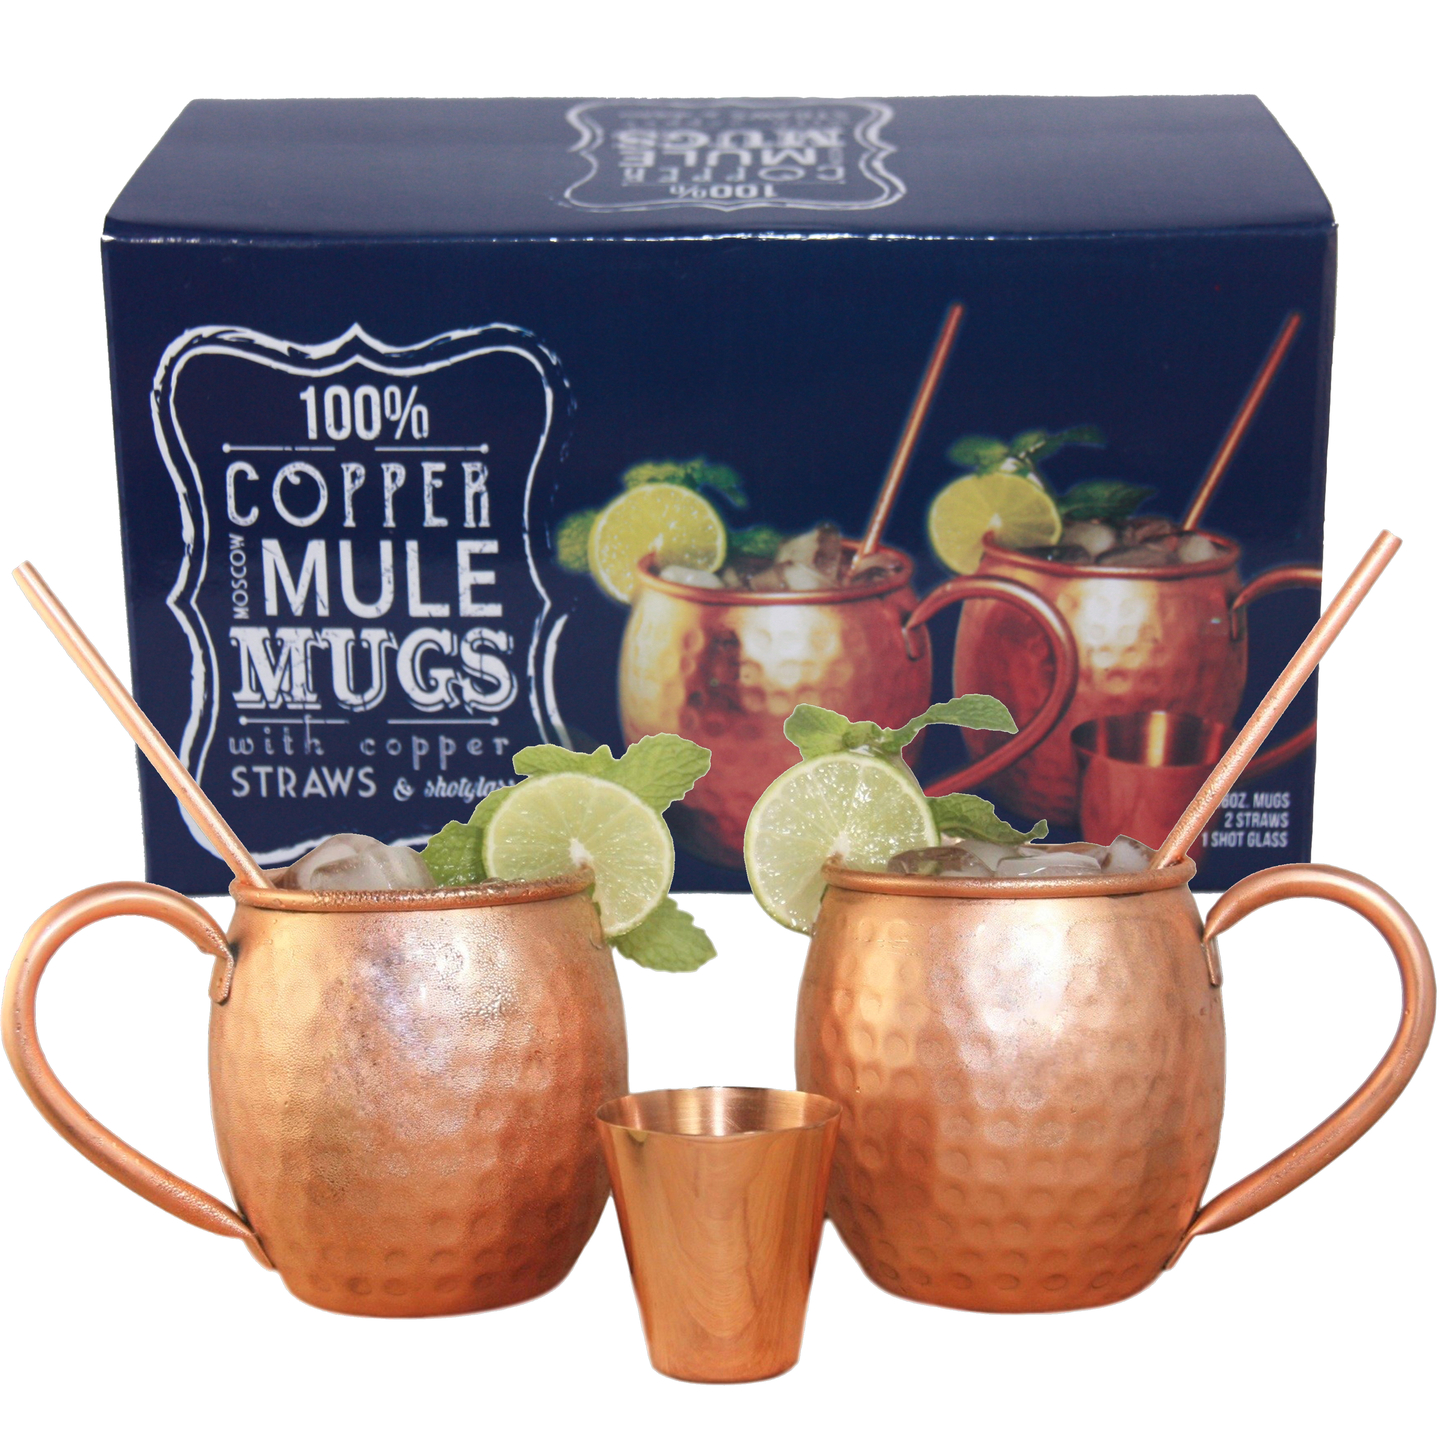 Image Result For Moscow Mule Mugs Why